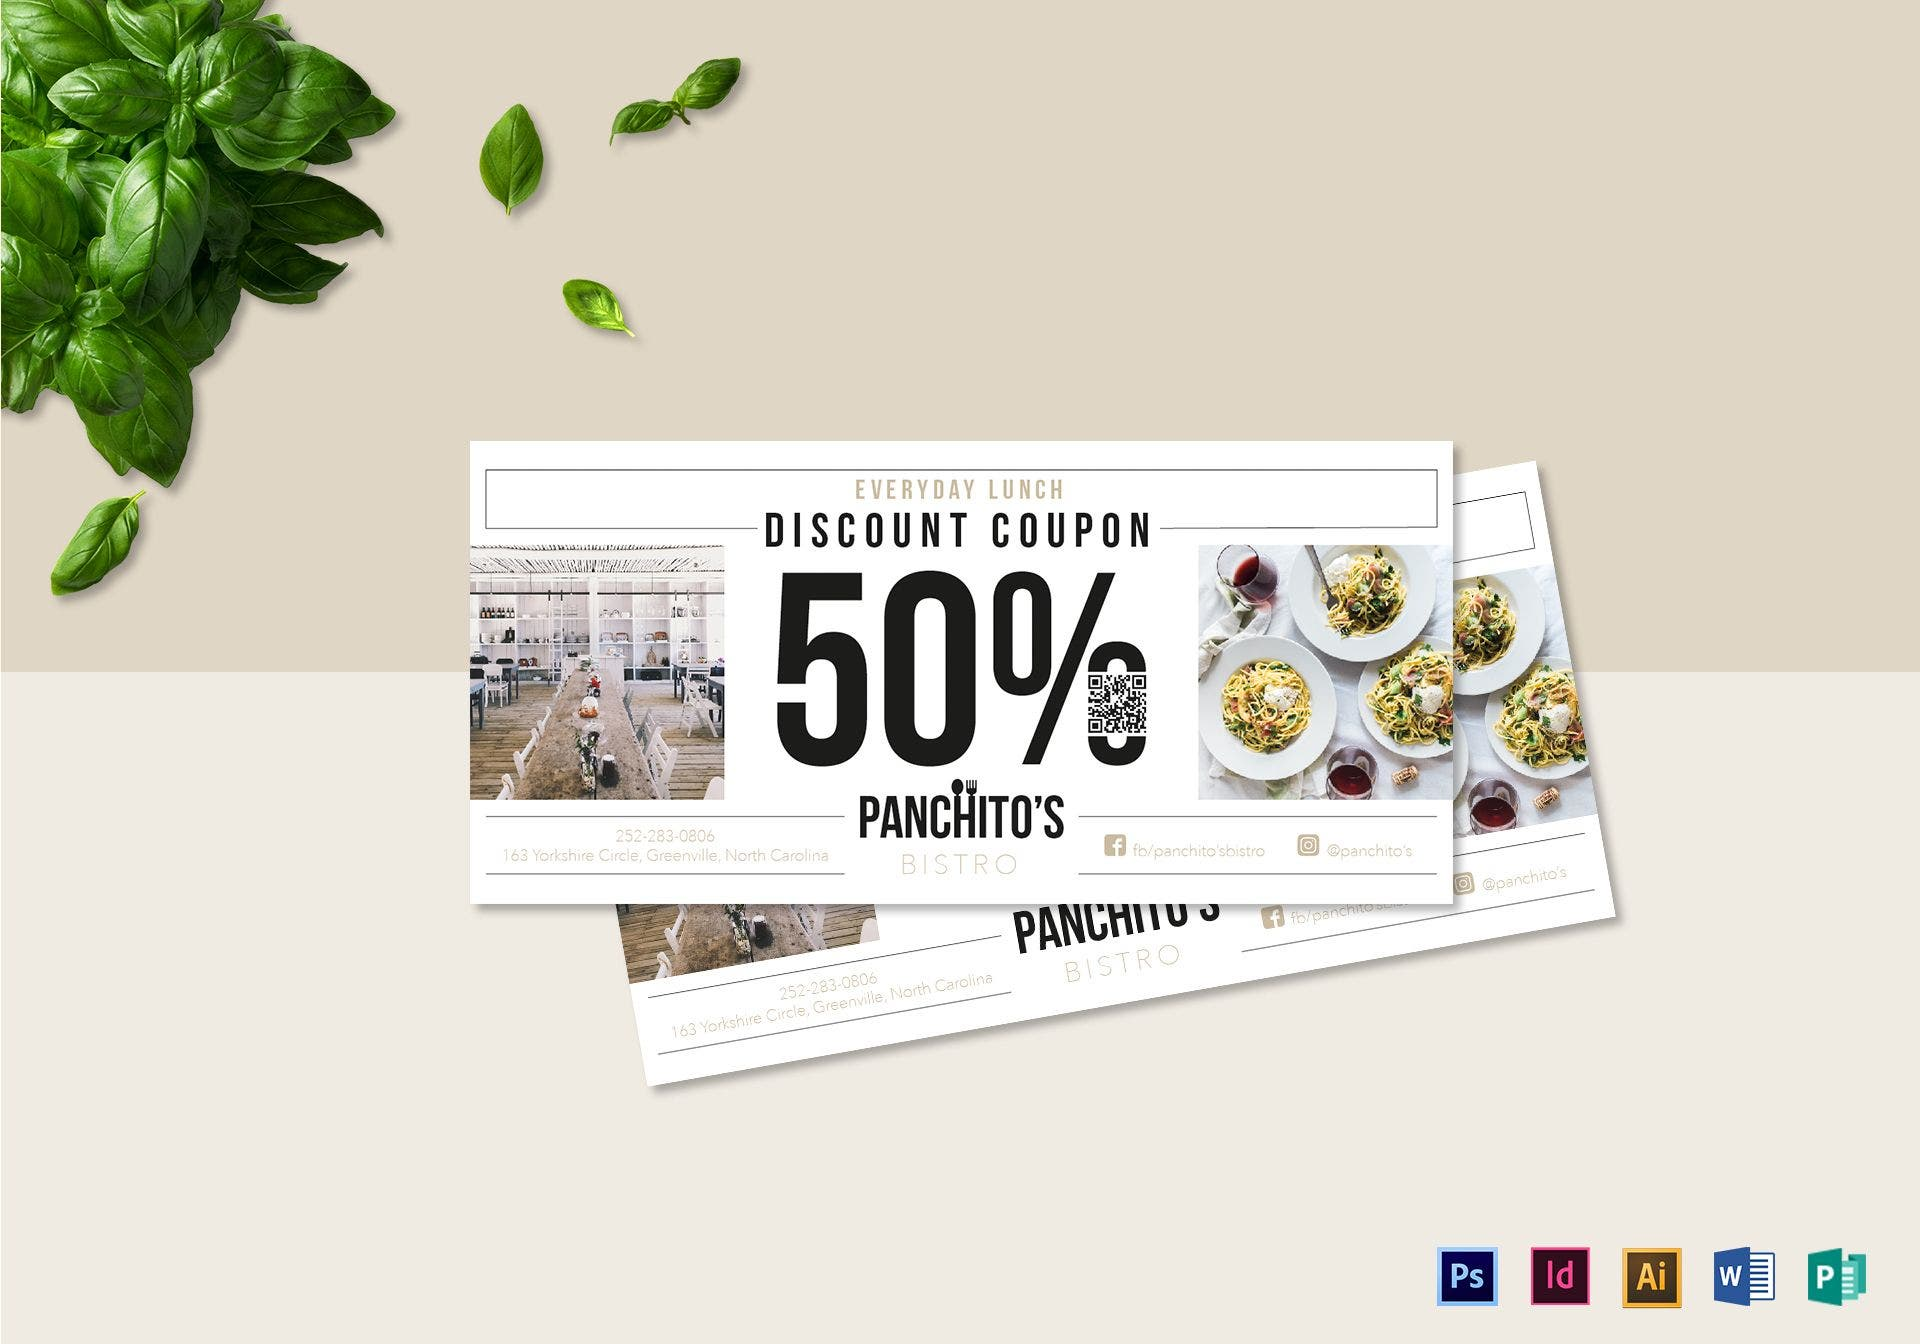 lunch discount coupon layout